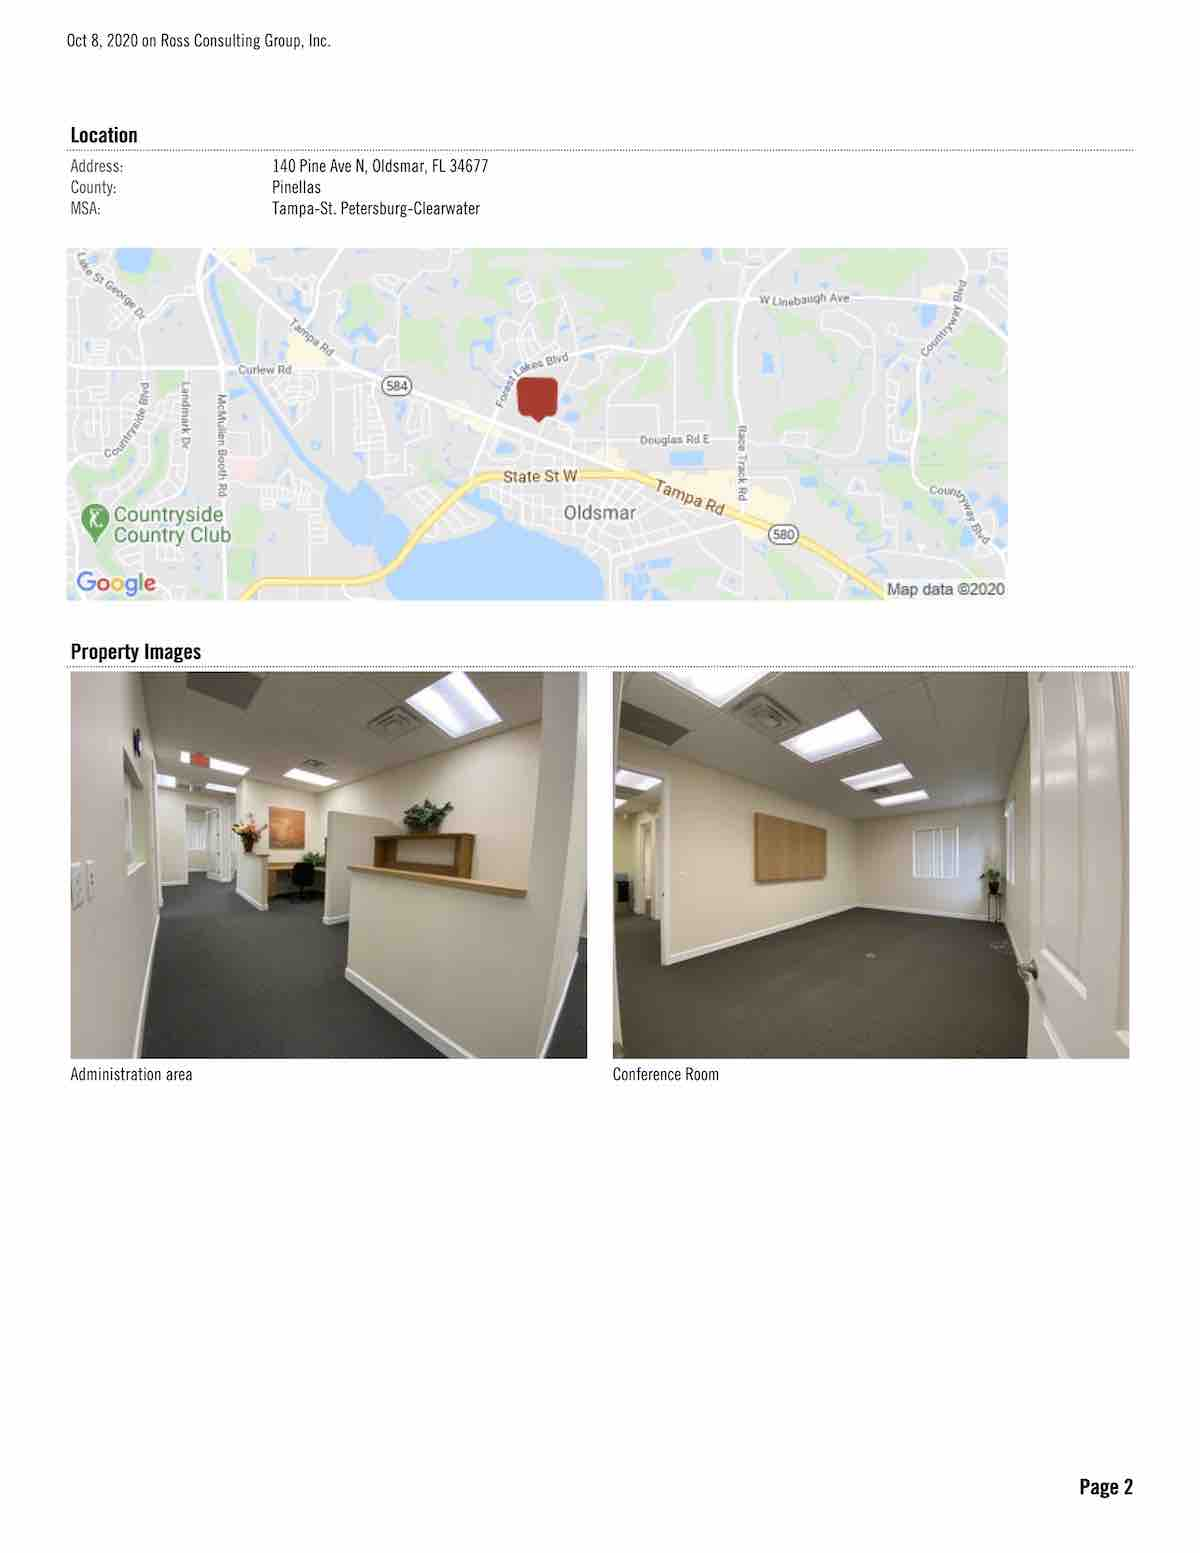 FOR LEASE - Cypress Lakes Professional Center - 140 Pine Ave N, Oldsmar, FL 34677 P2